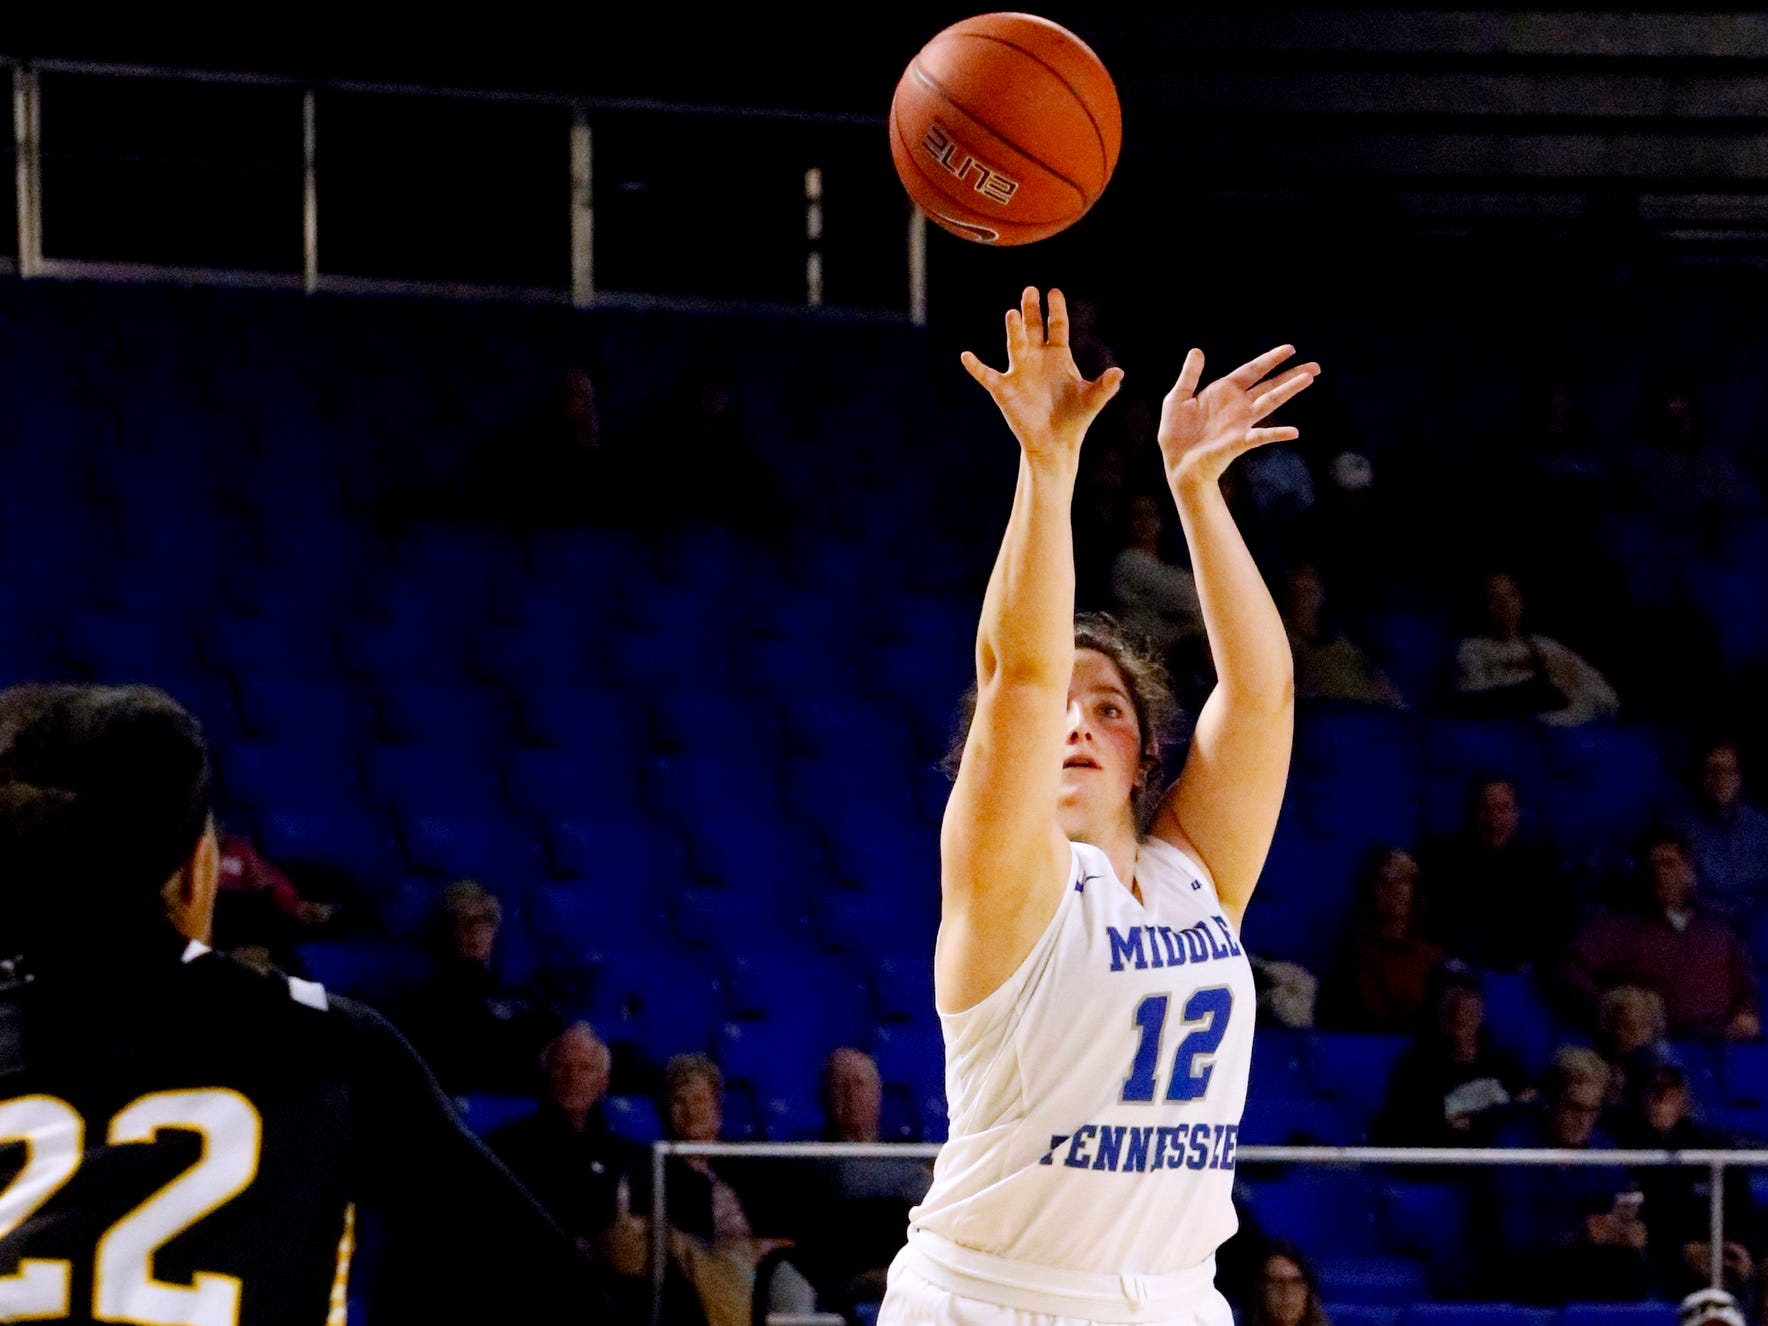 MTSU's guard Jess Louro (12) tries for a three point basket against Southern Miss on Thursday Jan. 10, 2019.